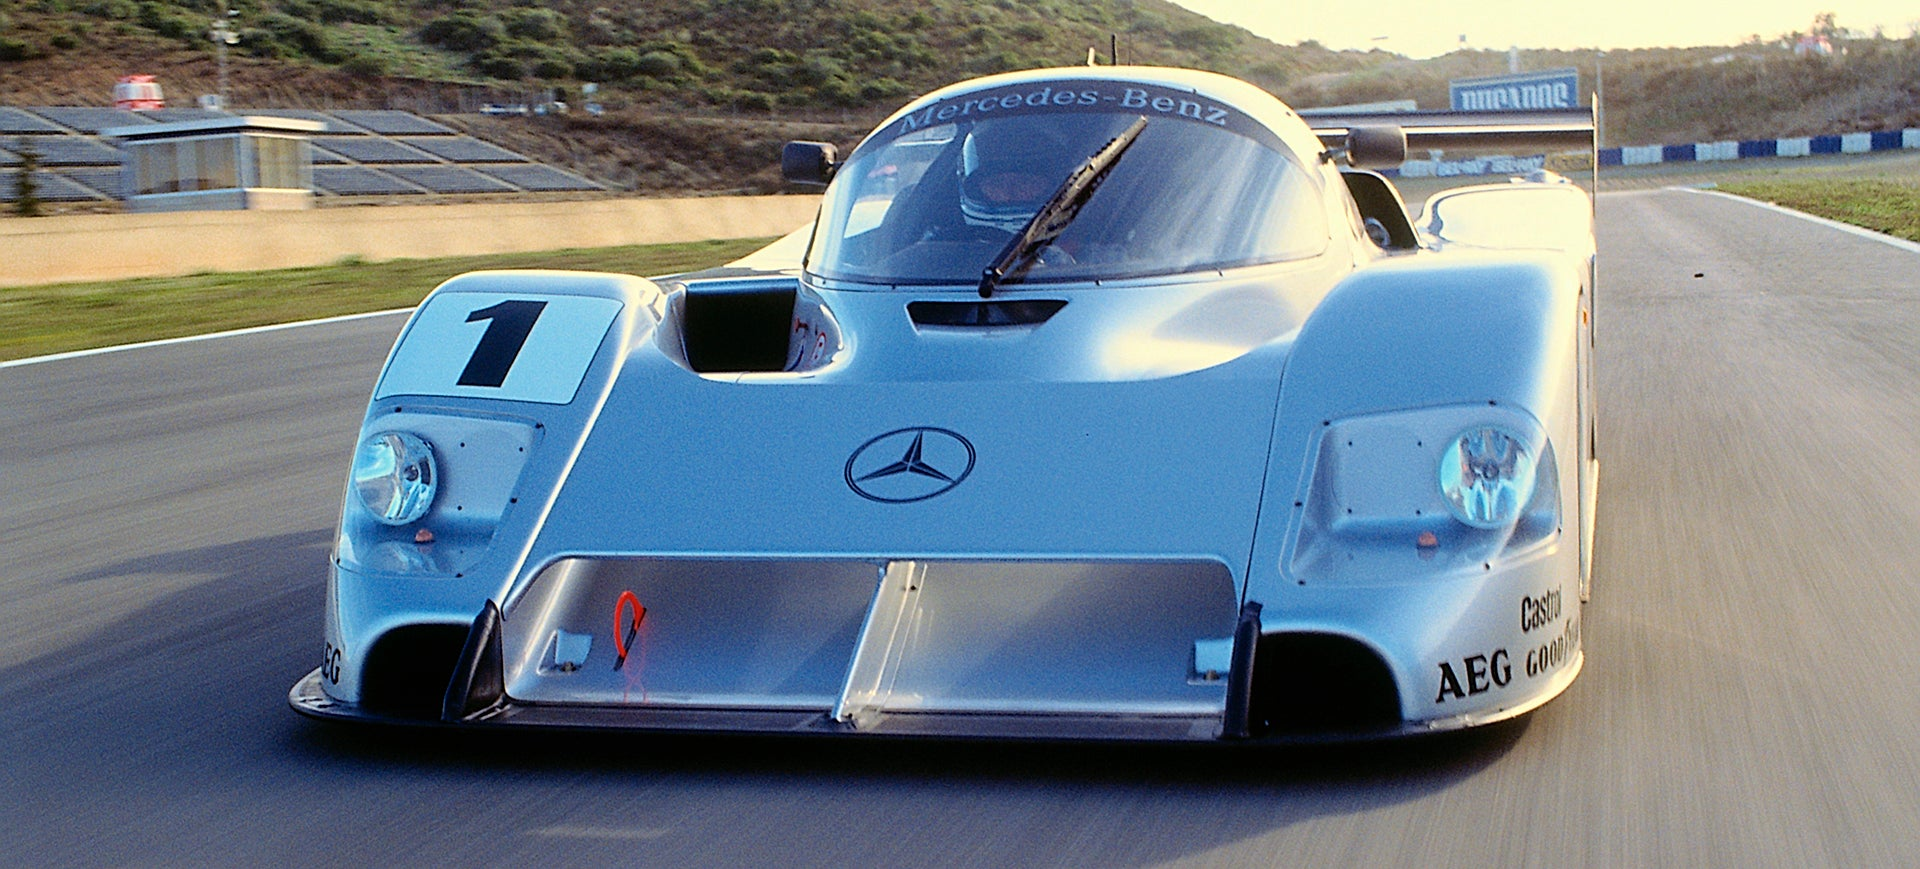 Listen To The Howl Of The Doomed Mercedes Flat-12 Engine